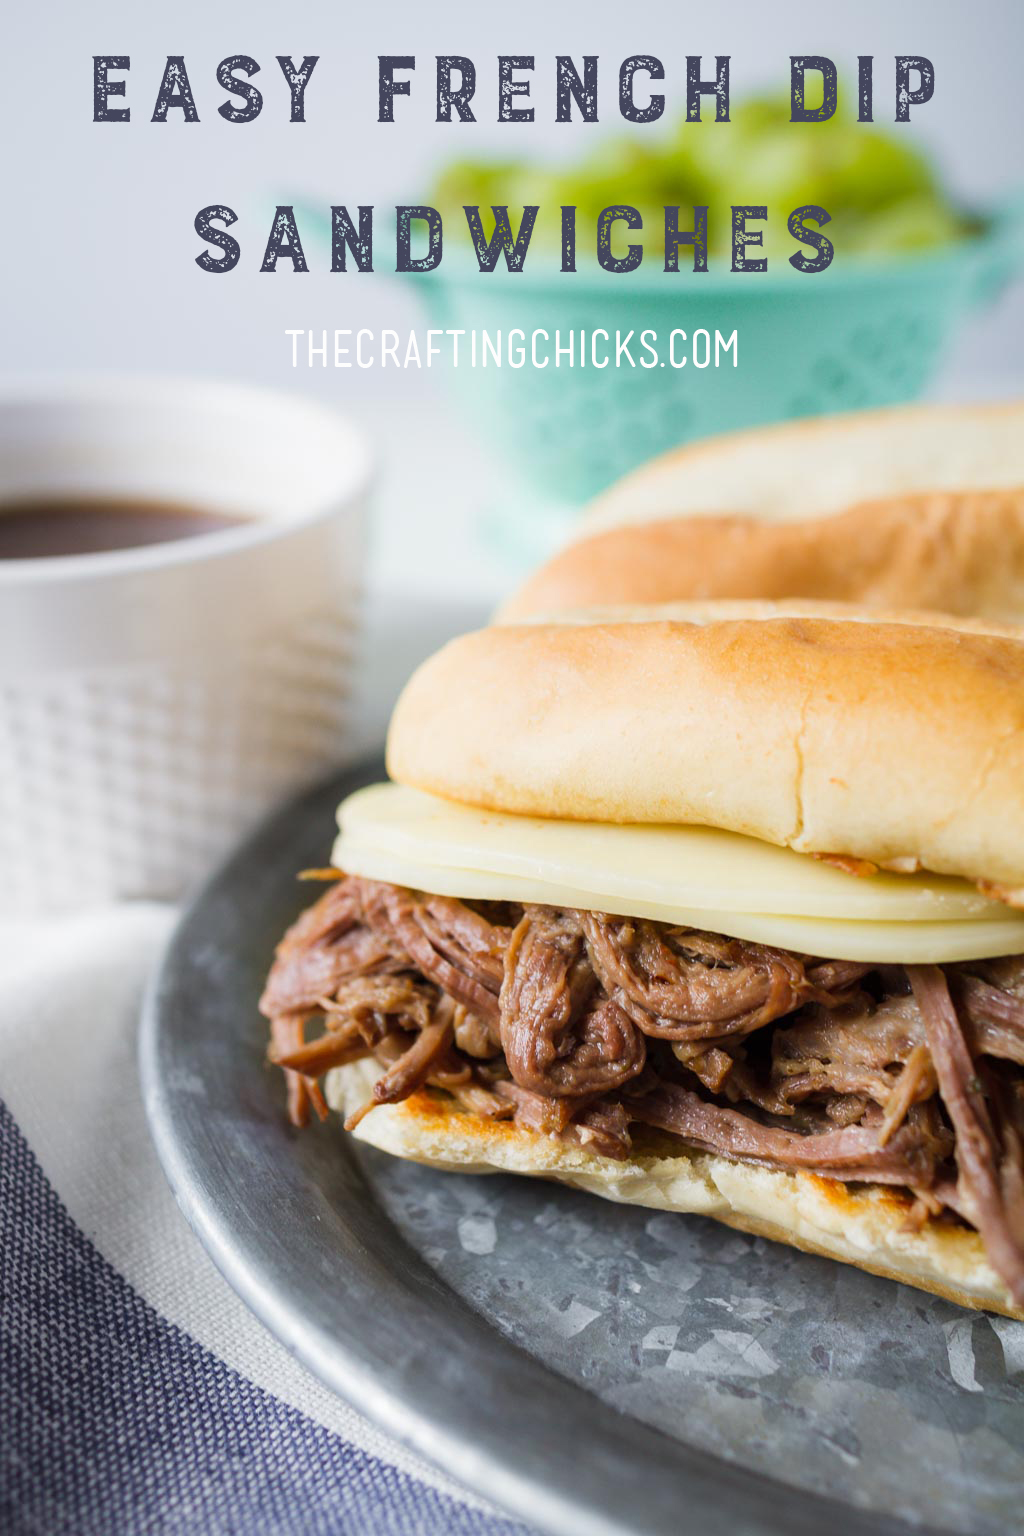 Easy French Dip Sandwiches in the crockpot or slow cooker